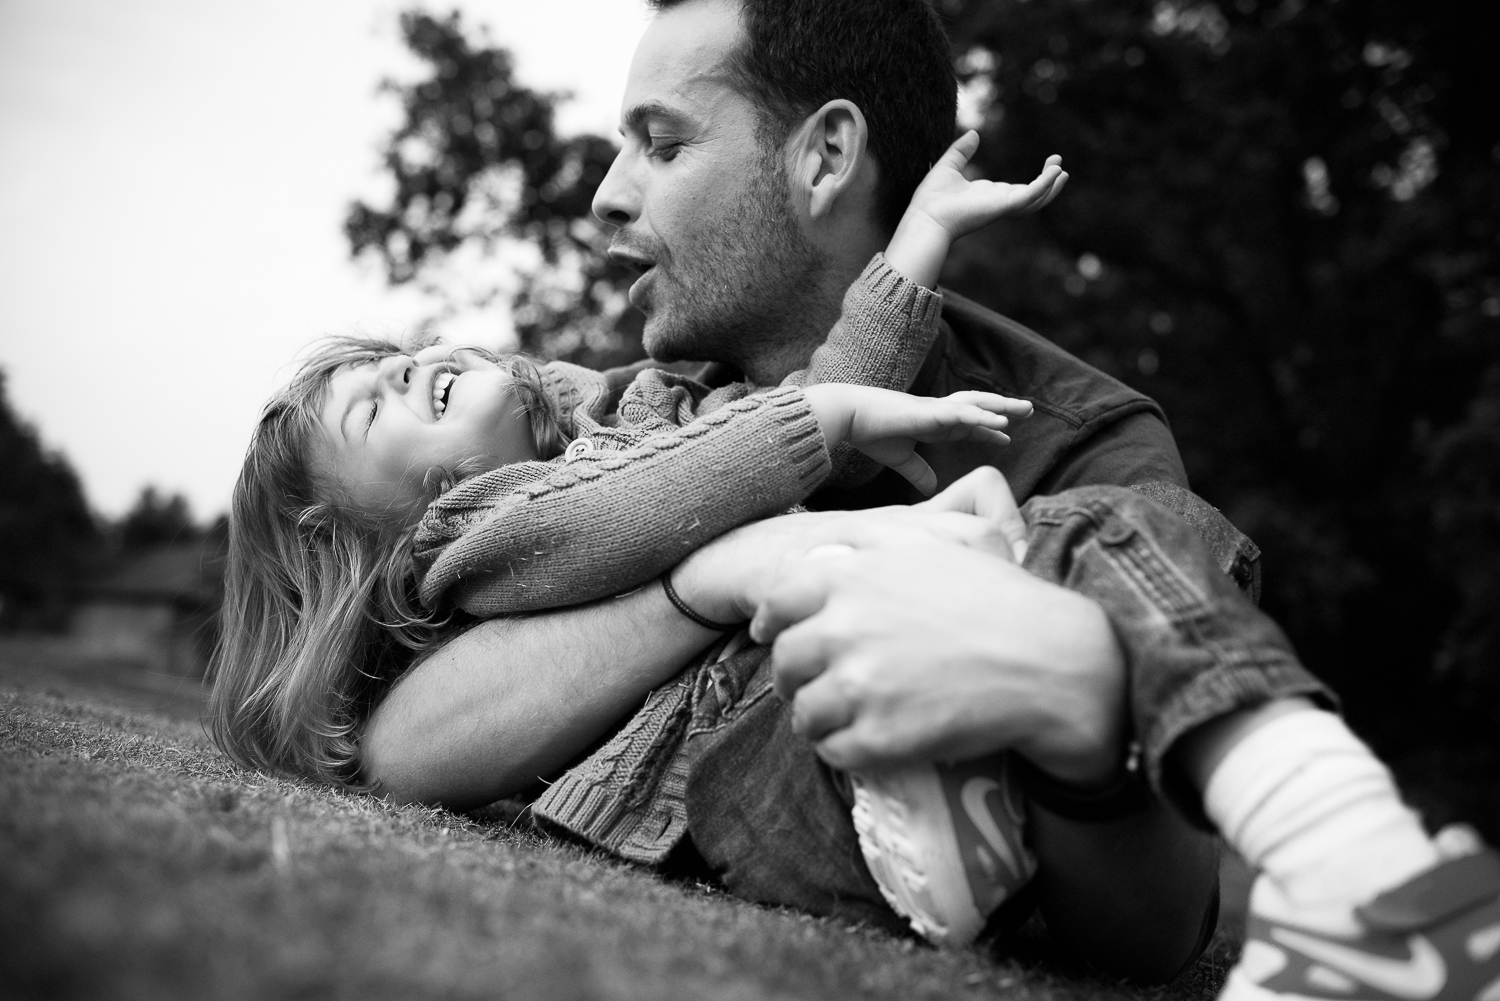 I love this photograph that my wife took during our England Summer 2015: It makes me feel exactly that joy I experience when playing with my daughter, priceless.